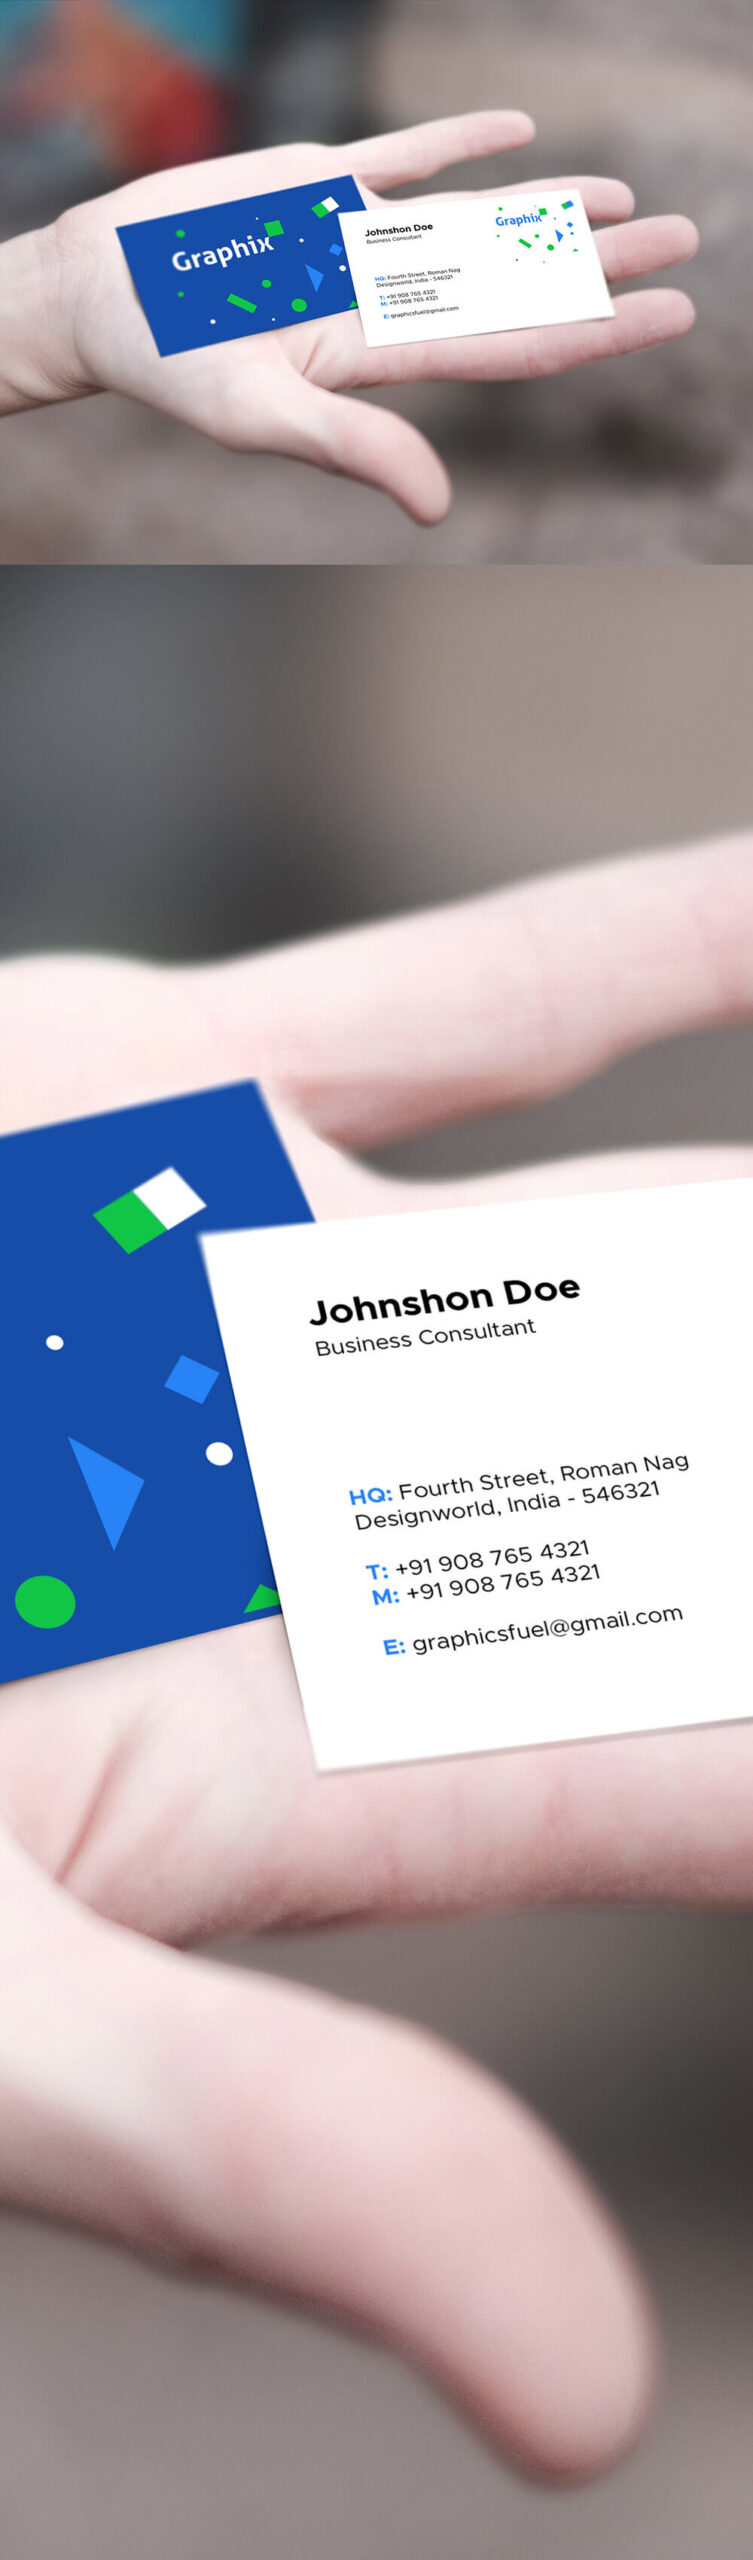 Free Delighted Business Card In Hand Mockup PSD Template